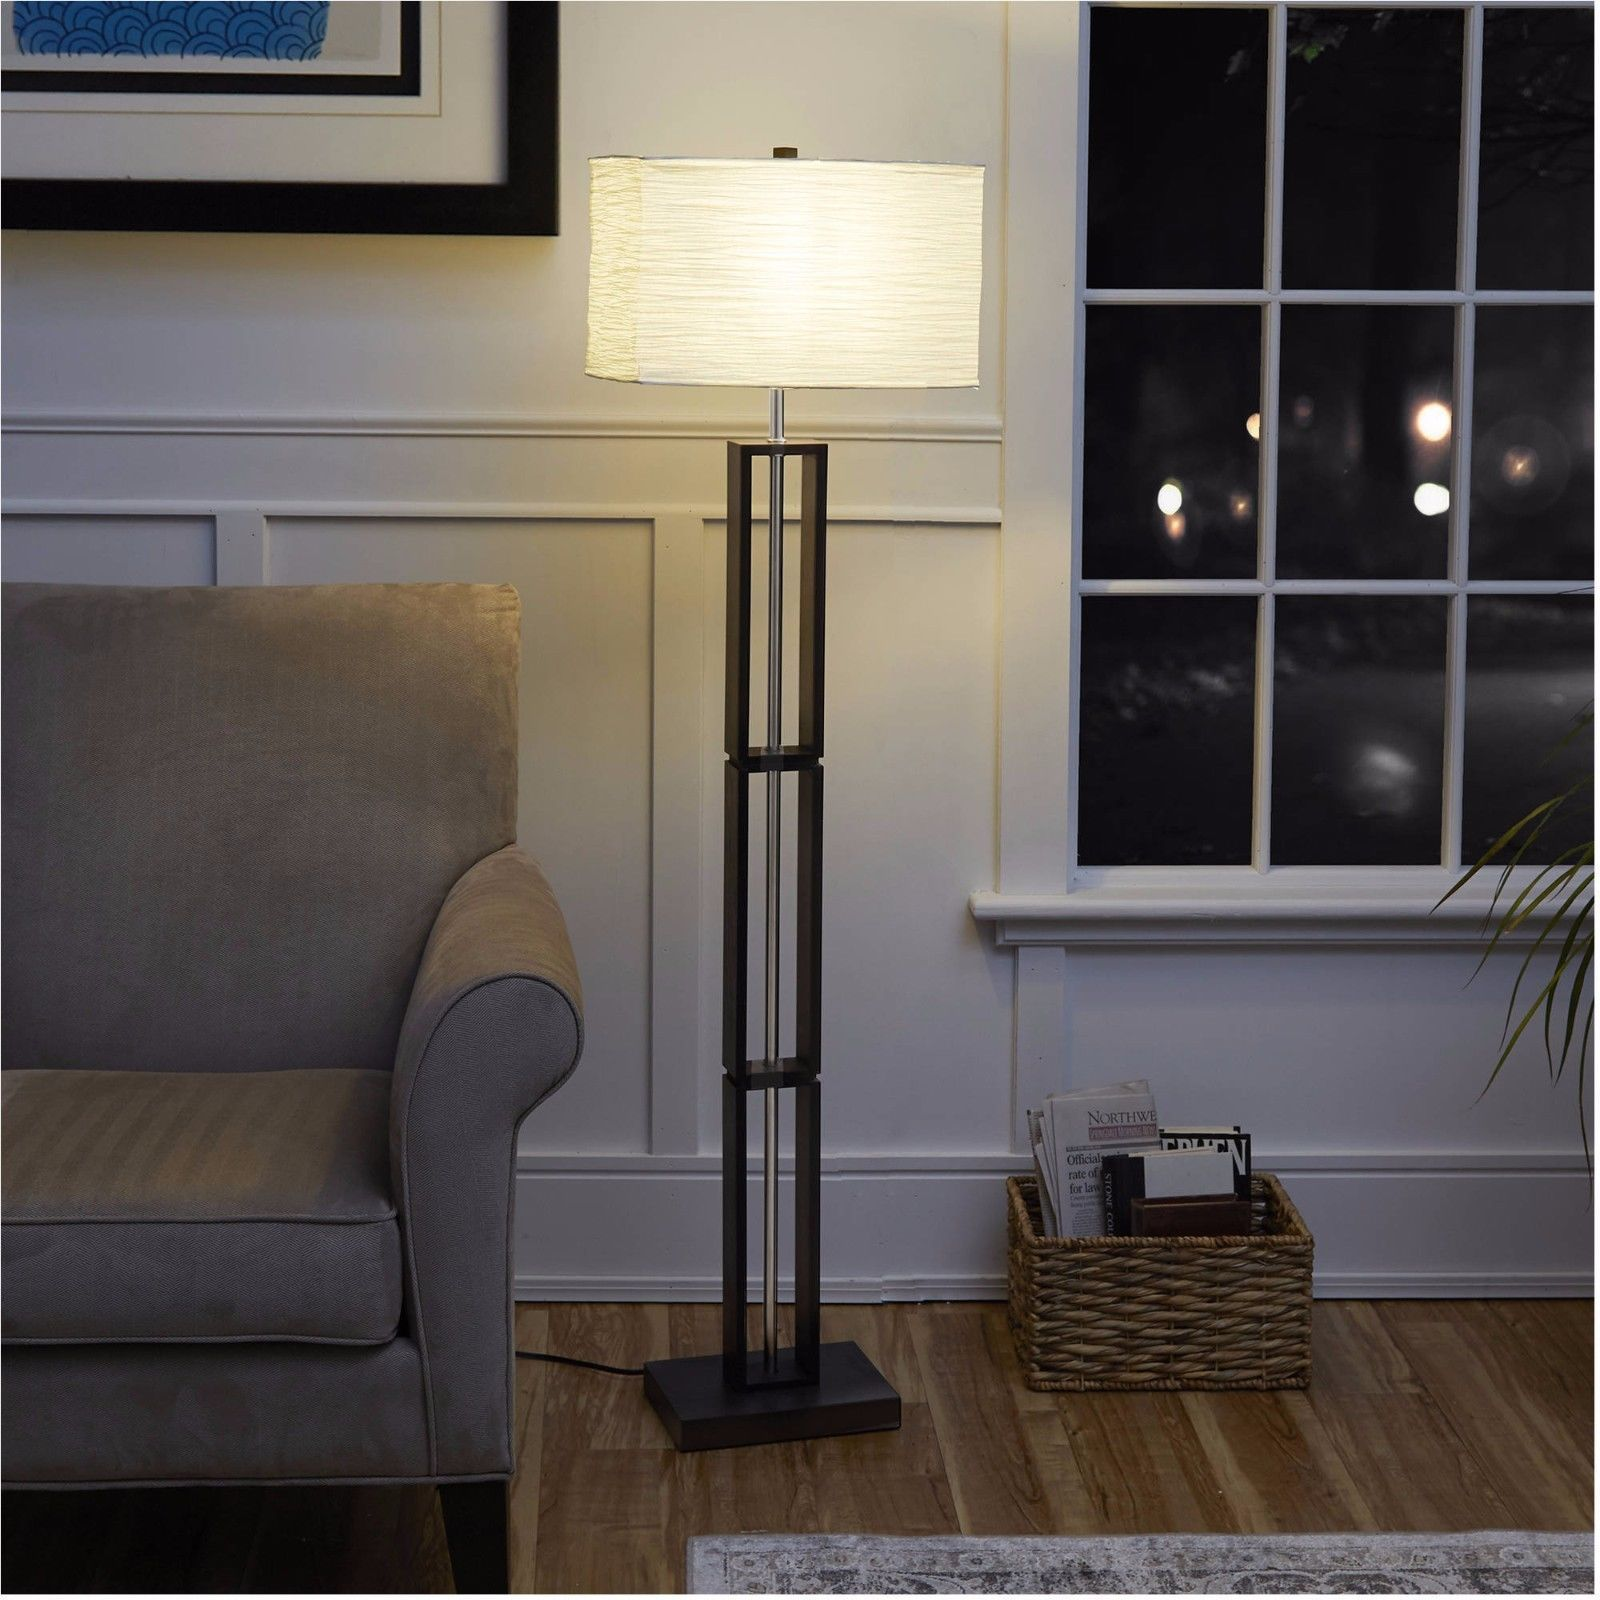 Details About Paper Shade Floor Lamp Rice Dark Wood Living Room Office Home Decor Night Light